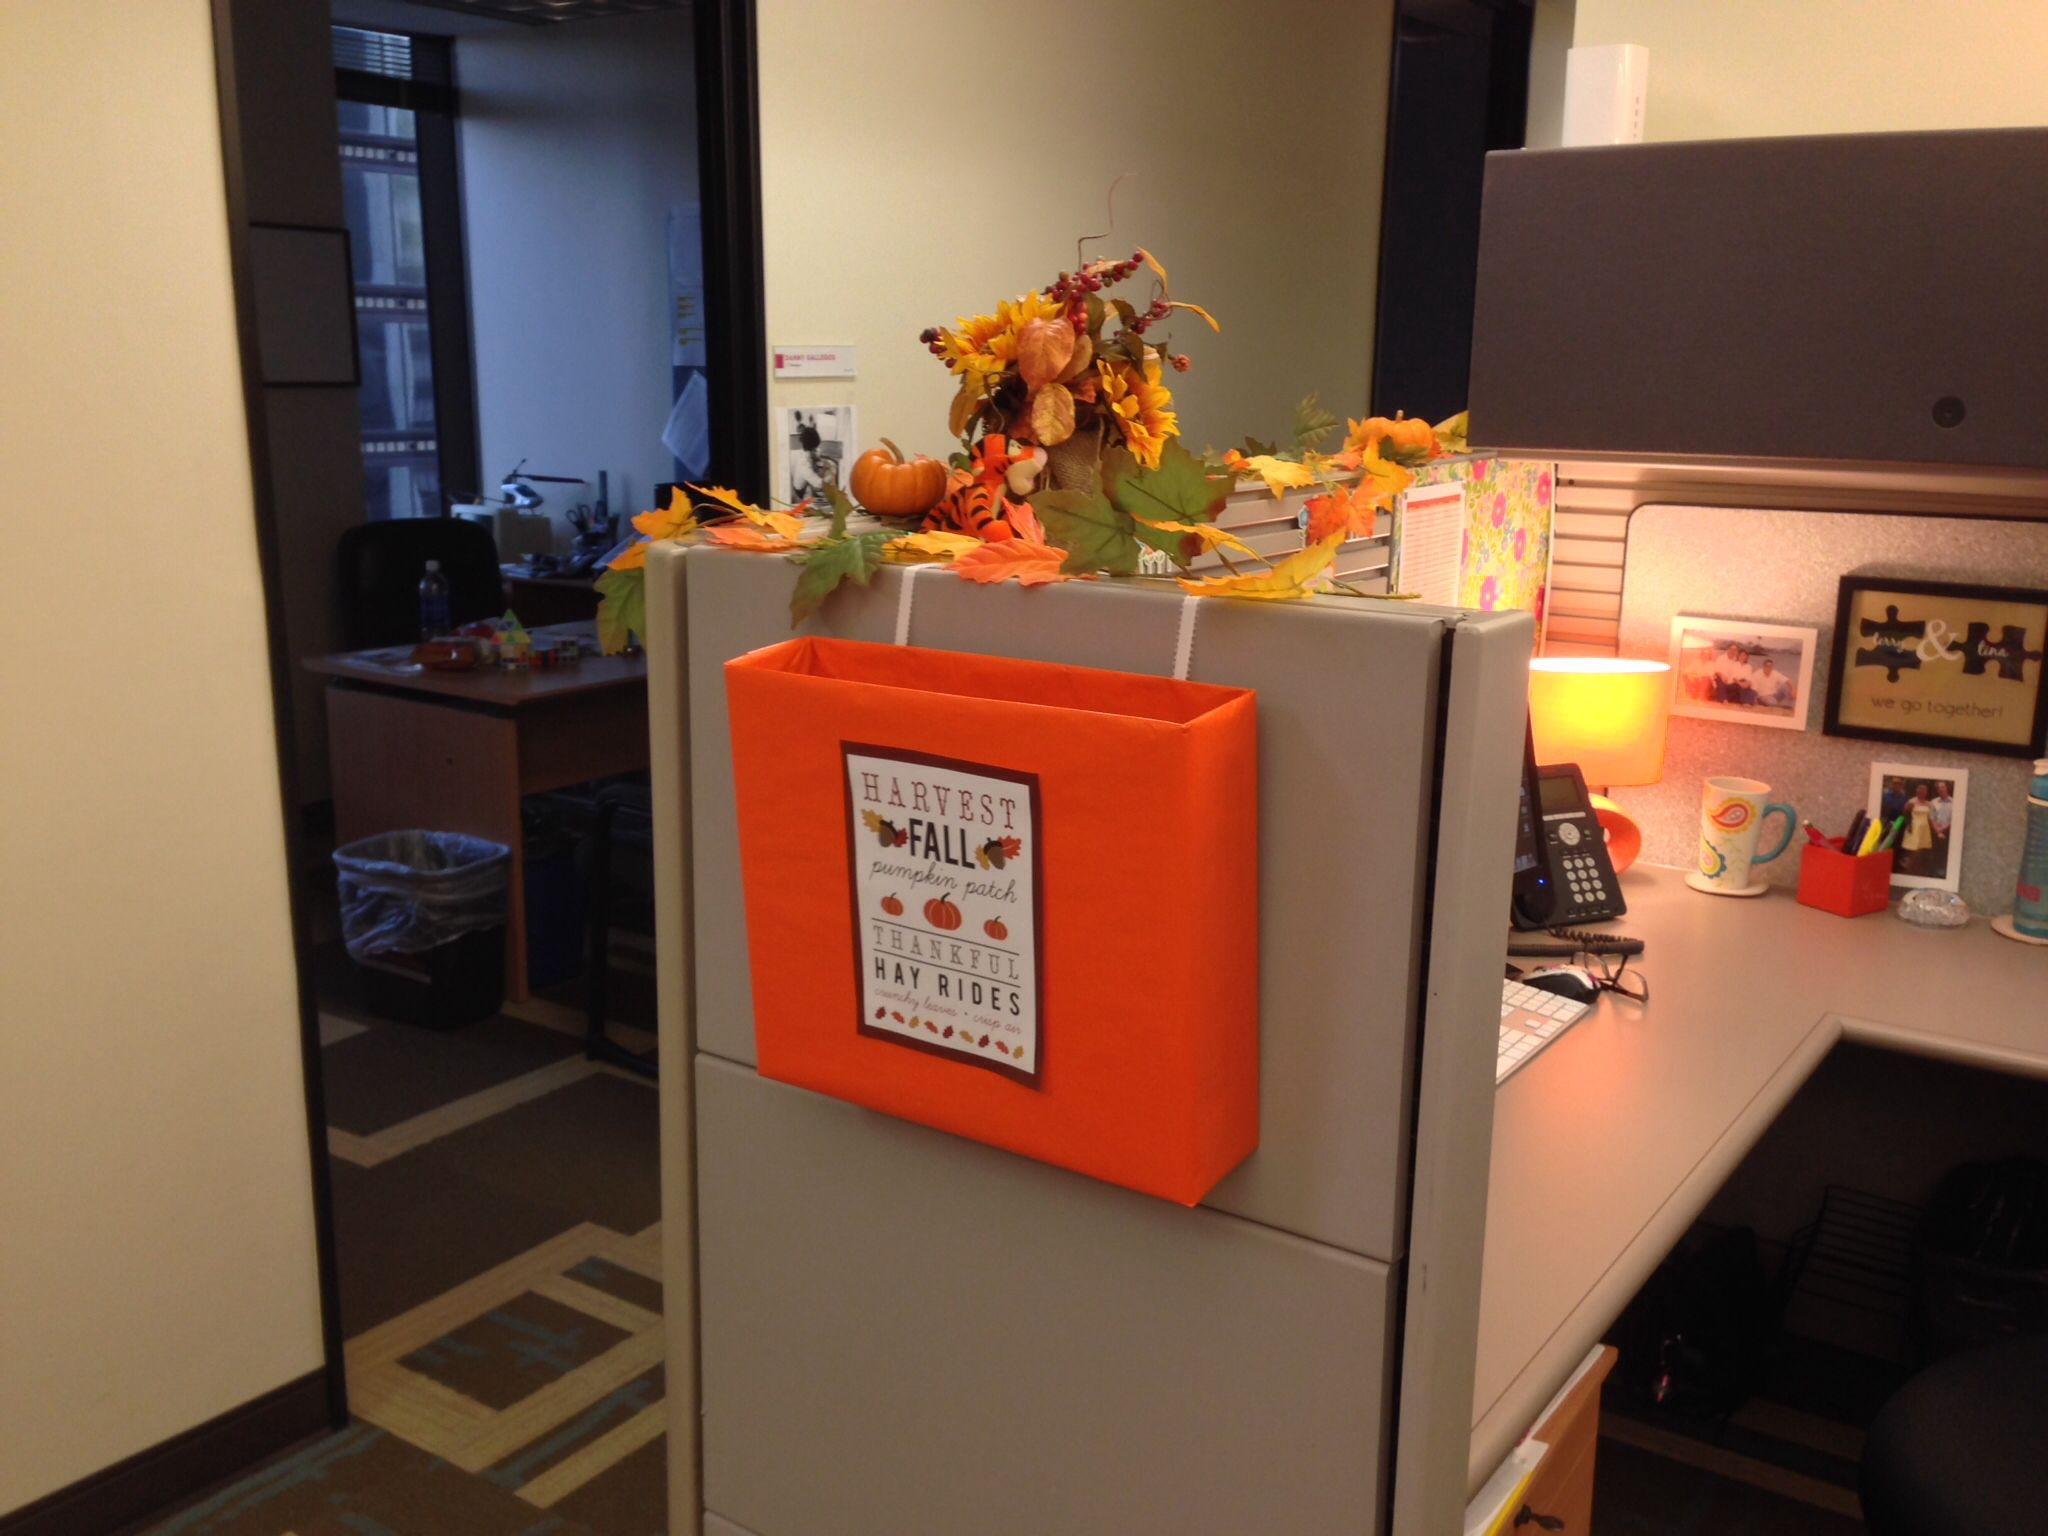 Merveilleux Thanksgiving Inbox Outside My Cubicle. Thanksgiving 2017, Thanksgiving  Decorations, Office Decorations, Table